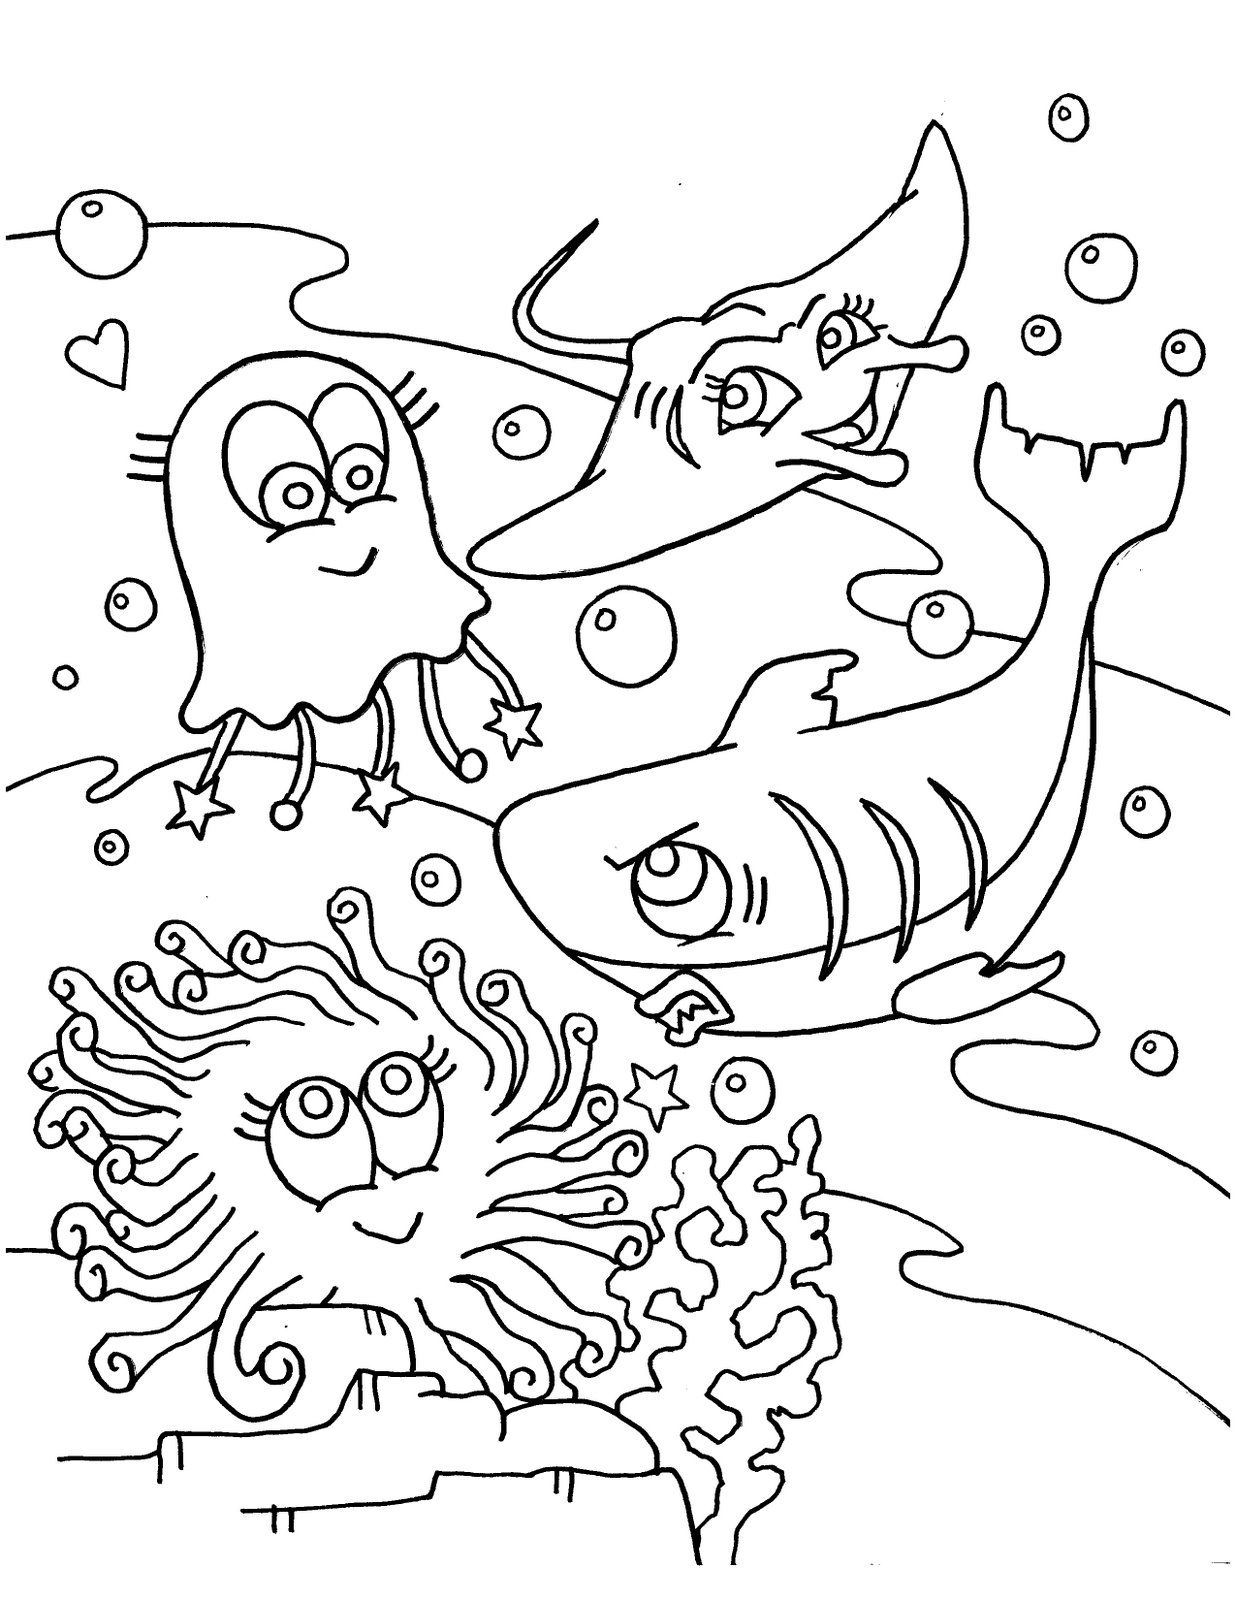 Printable Ocean Coloring Pages Coloring Me Sea Creatures Coloring Page